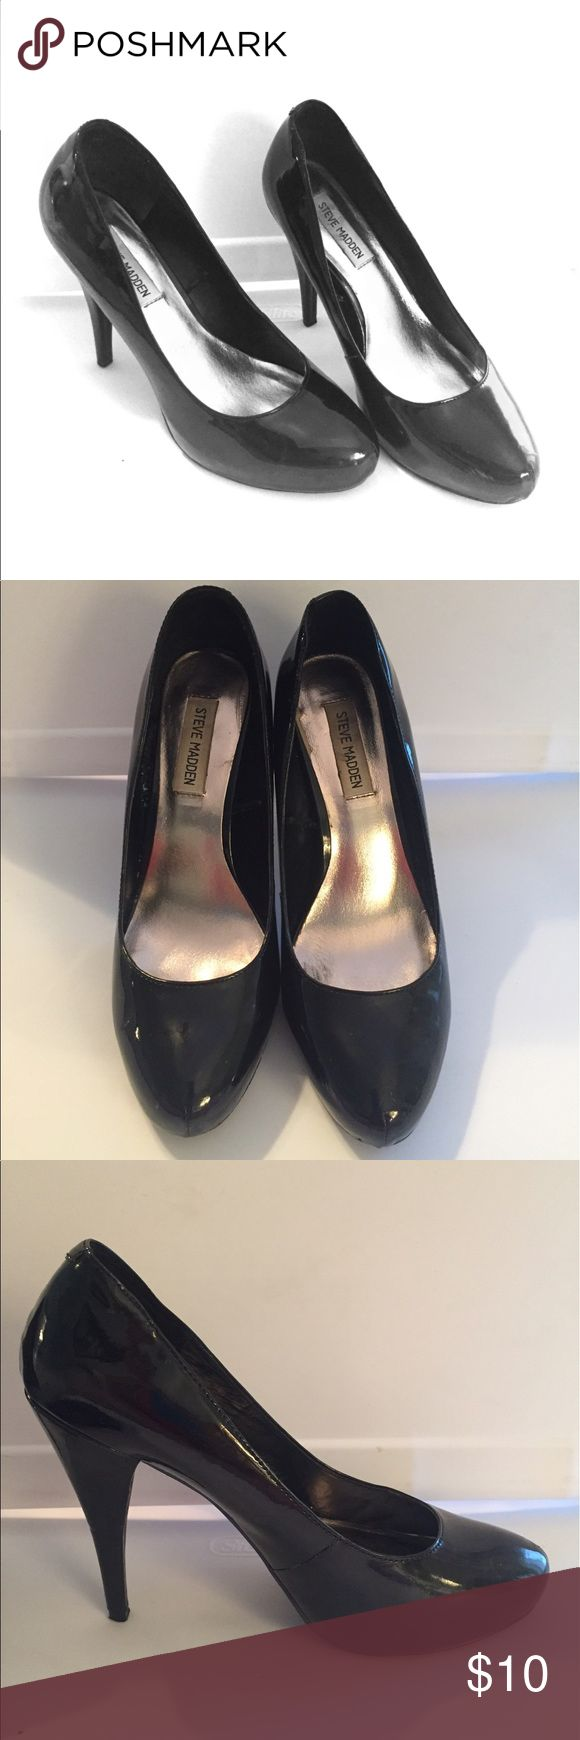 Steve Madden Black Patent Leather Heels Steve Madden Black Heels size 8 1/2 medium. In great condition. Patent leather. 5 inch heel with 3/4 inch platform. Steve Madden Shoes Heels